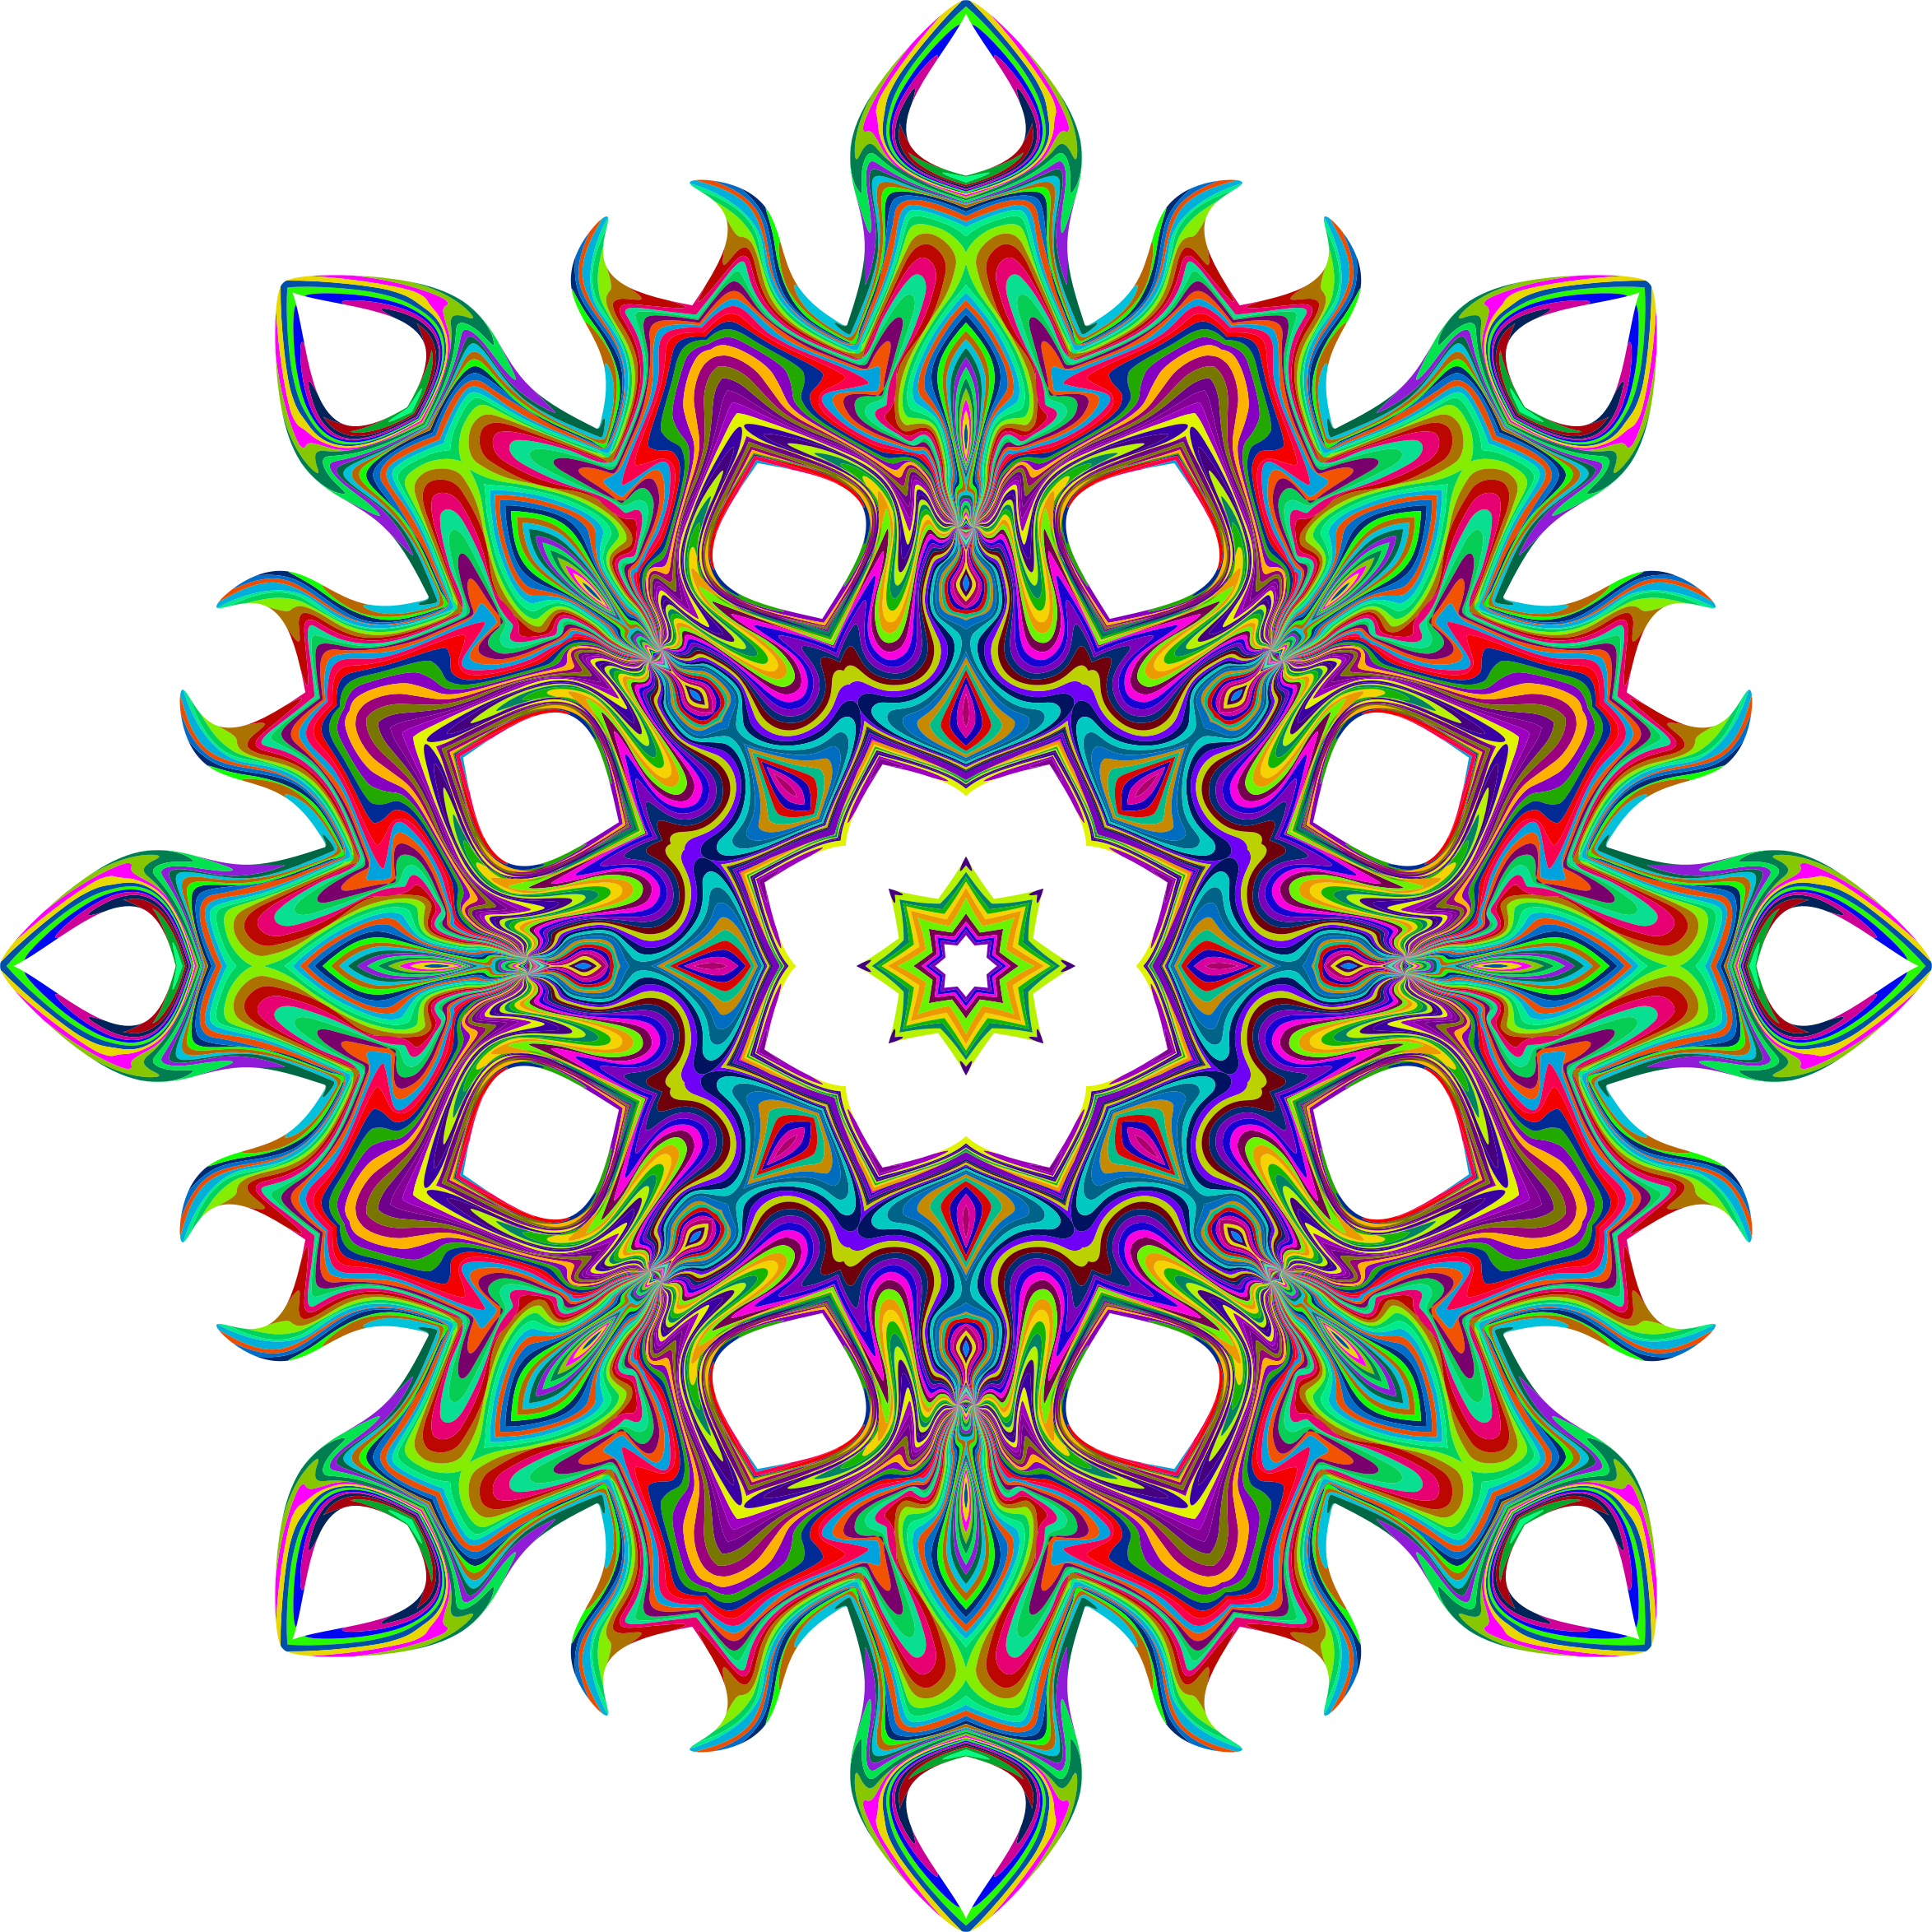 Psychedelic Geometric Star 2 by GDJ